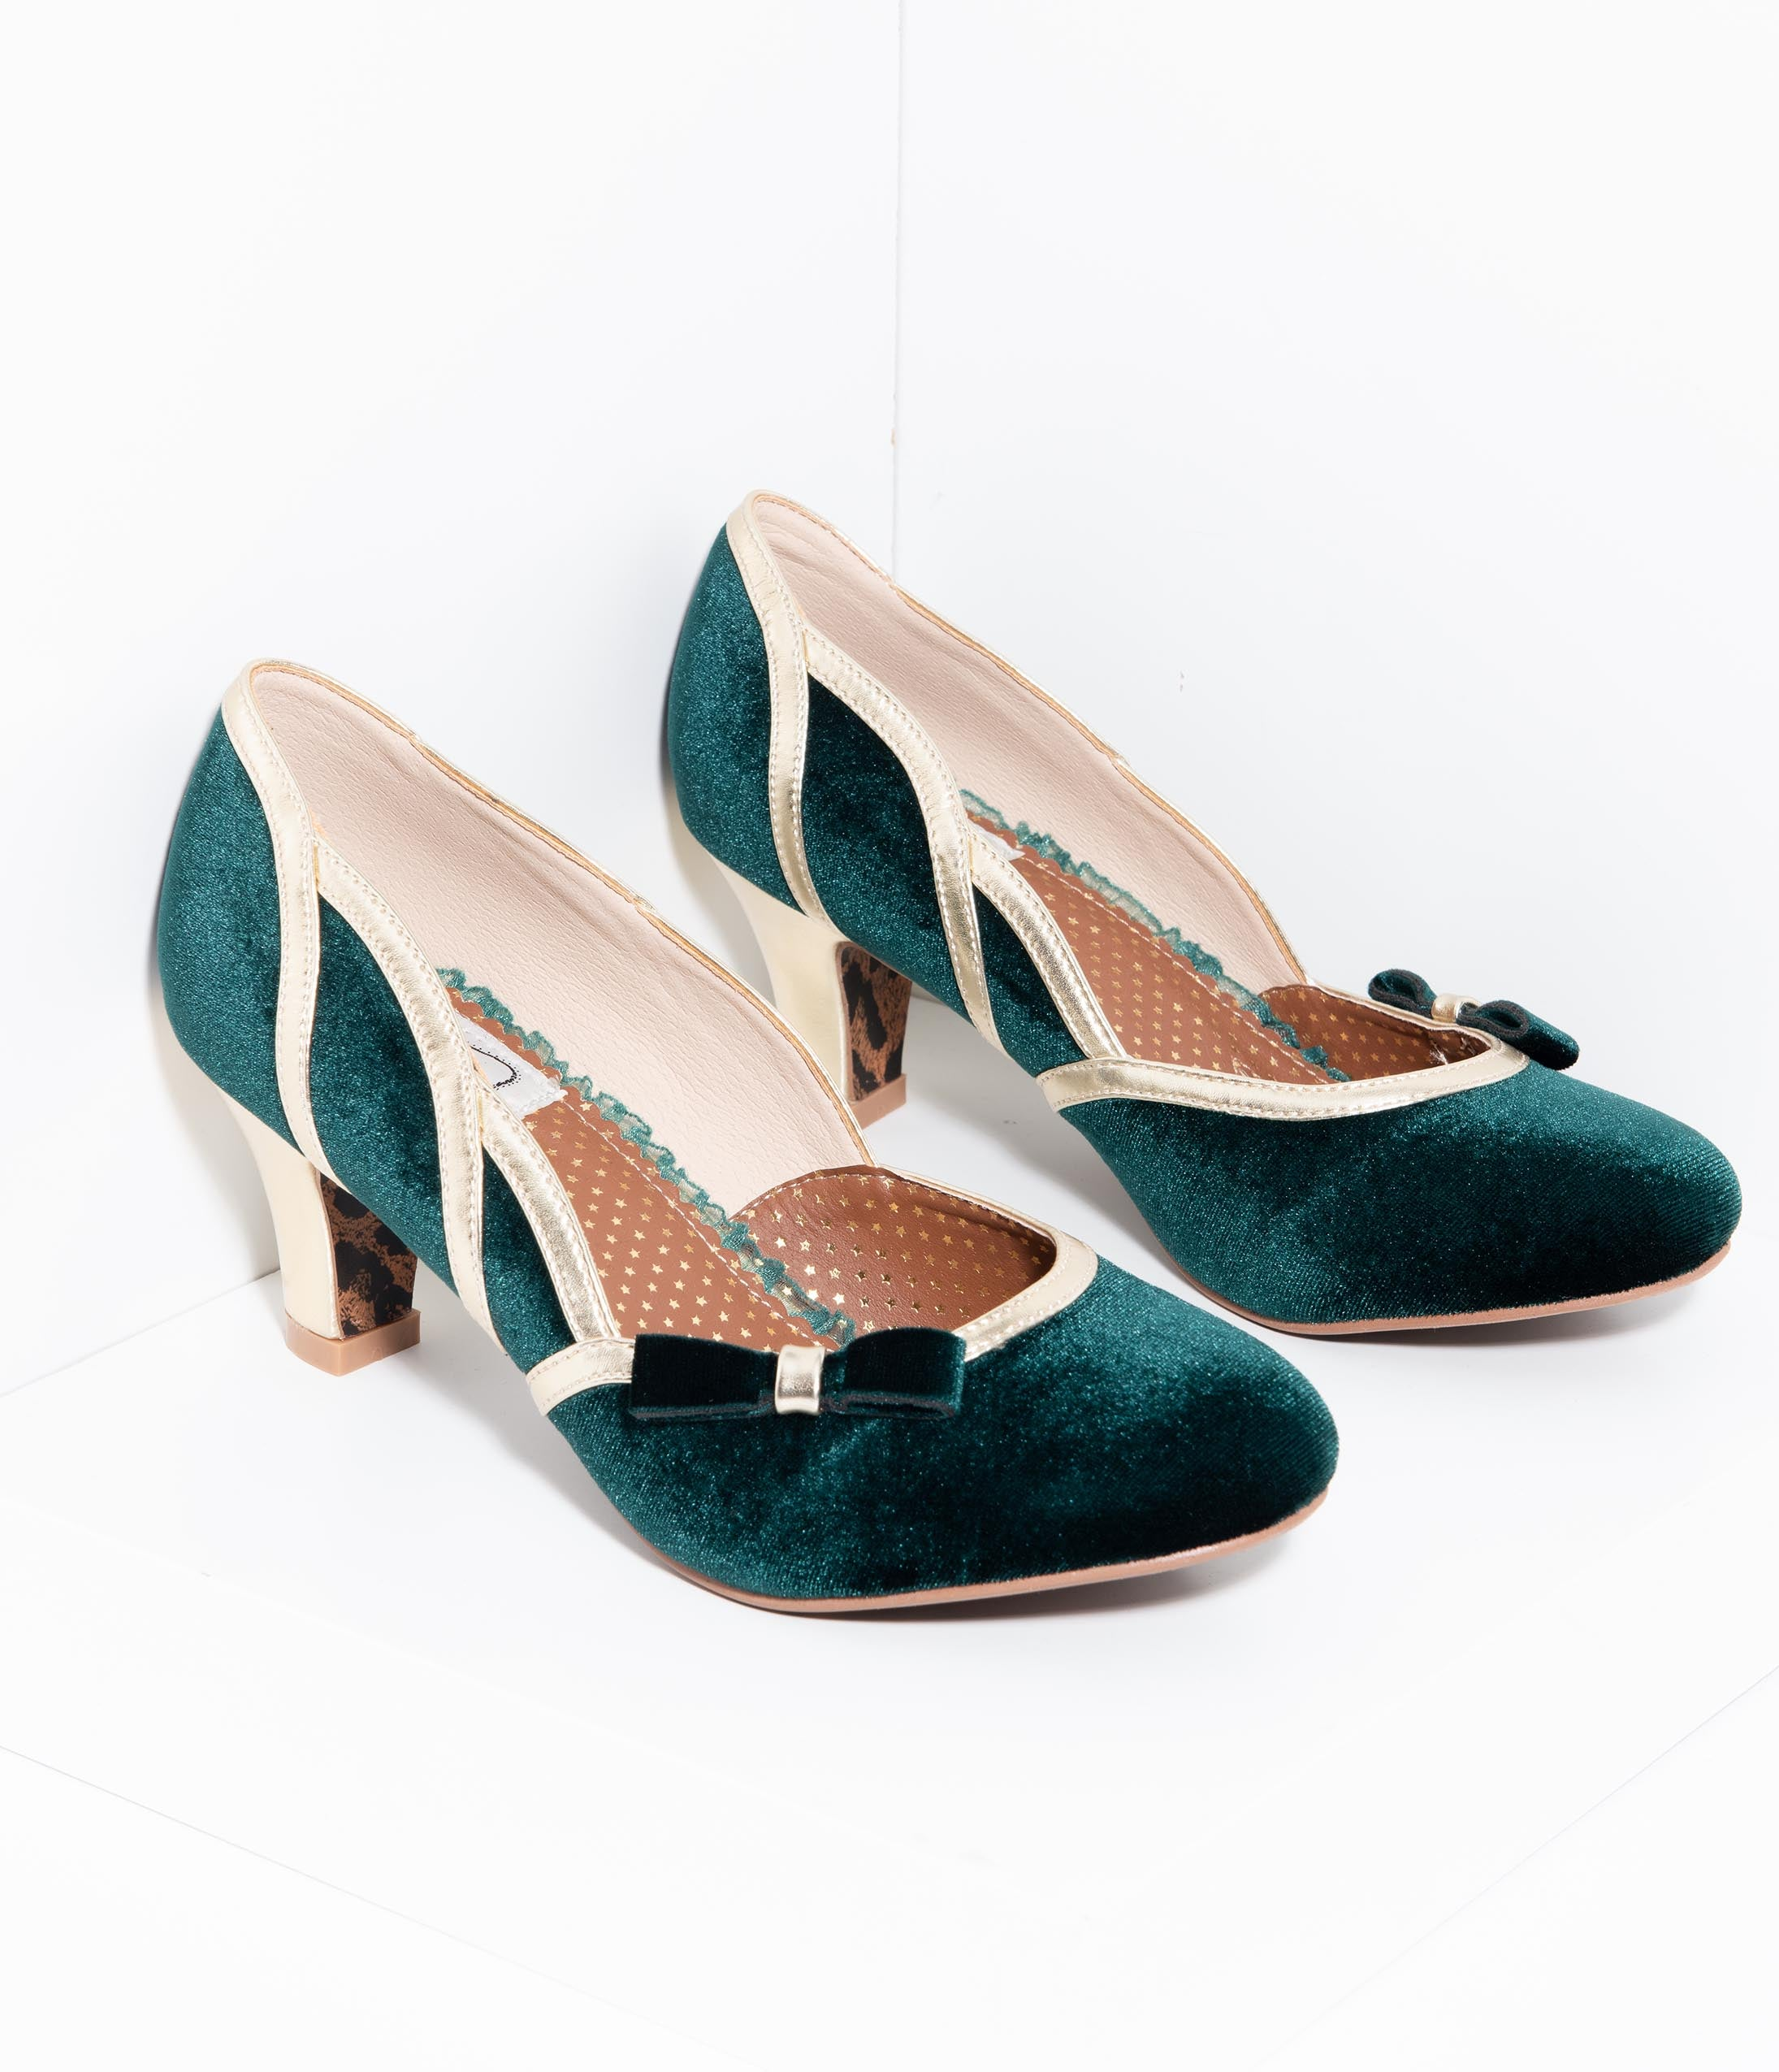 Rockabilly Shoes- Heels, Pumps, Boots, Flats Bettie Page 1950S Style Emerald Green Suede  Gold Trim Camille Heels $76.00 AT vintagedancer.com